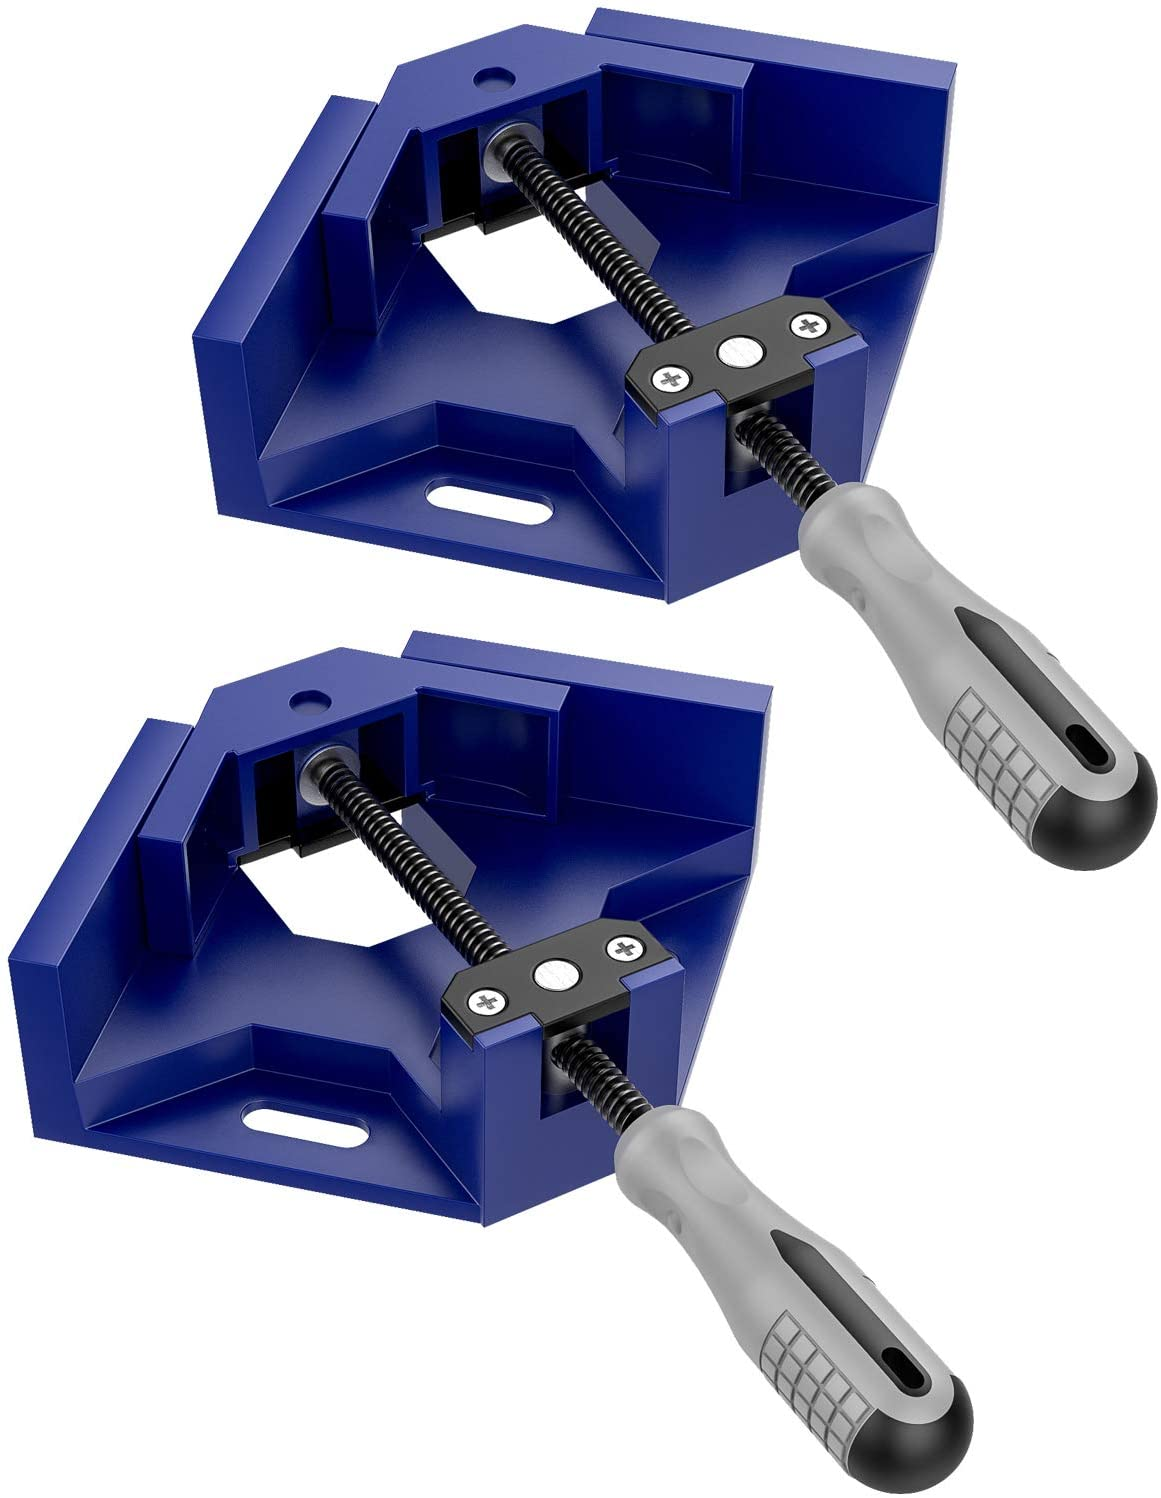 Housolution Right Angle Clamp, [2 PACK] Single Handle 90°Aluminum Alloy Corner Clamp, Right Angle Clip Clamp Tool Woodworking Photo Frame Vise Holder with Adjustable Swing Jaw - Blue